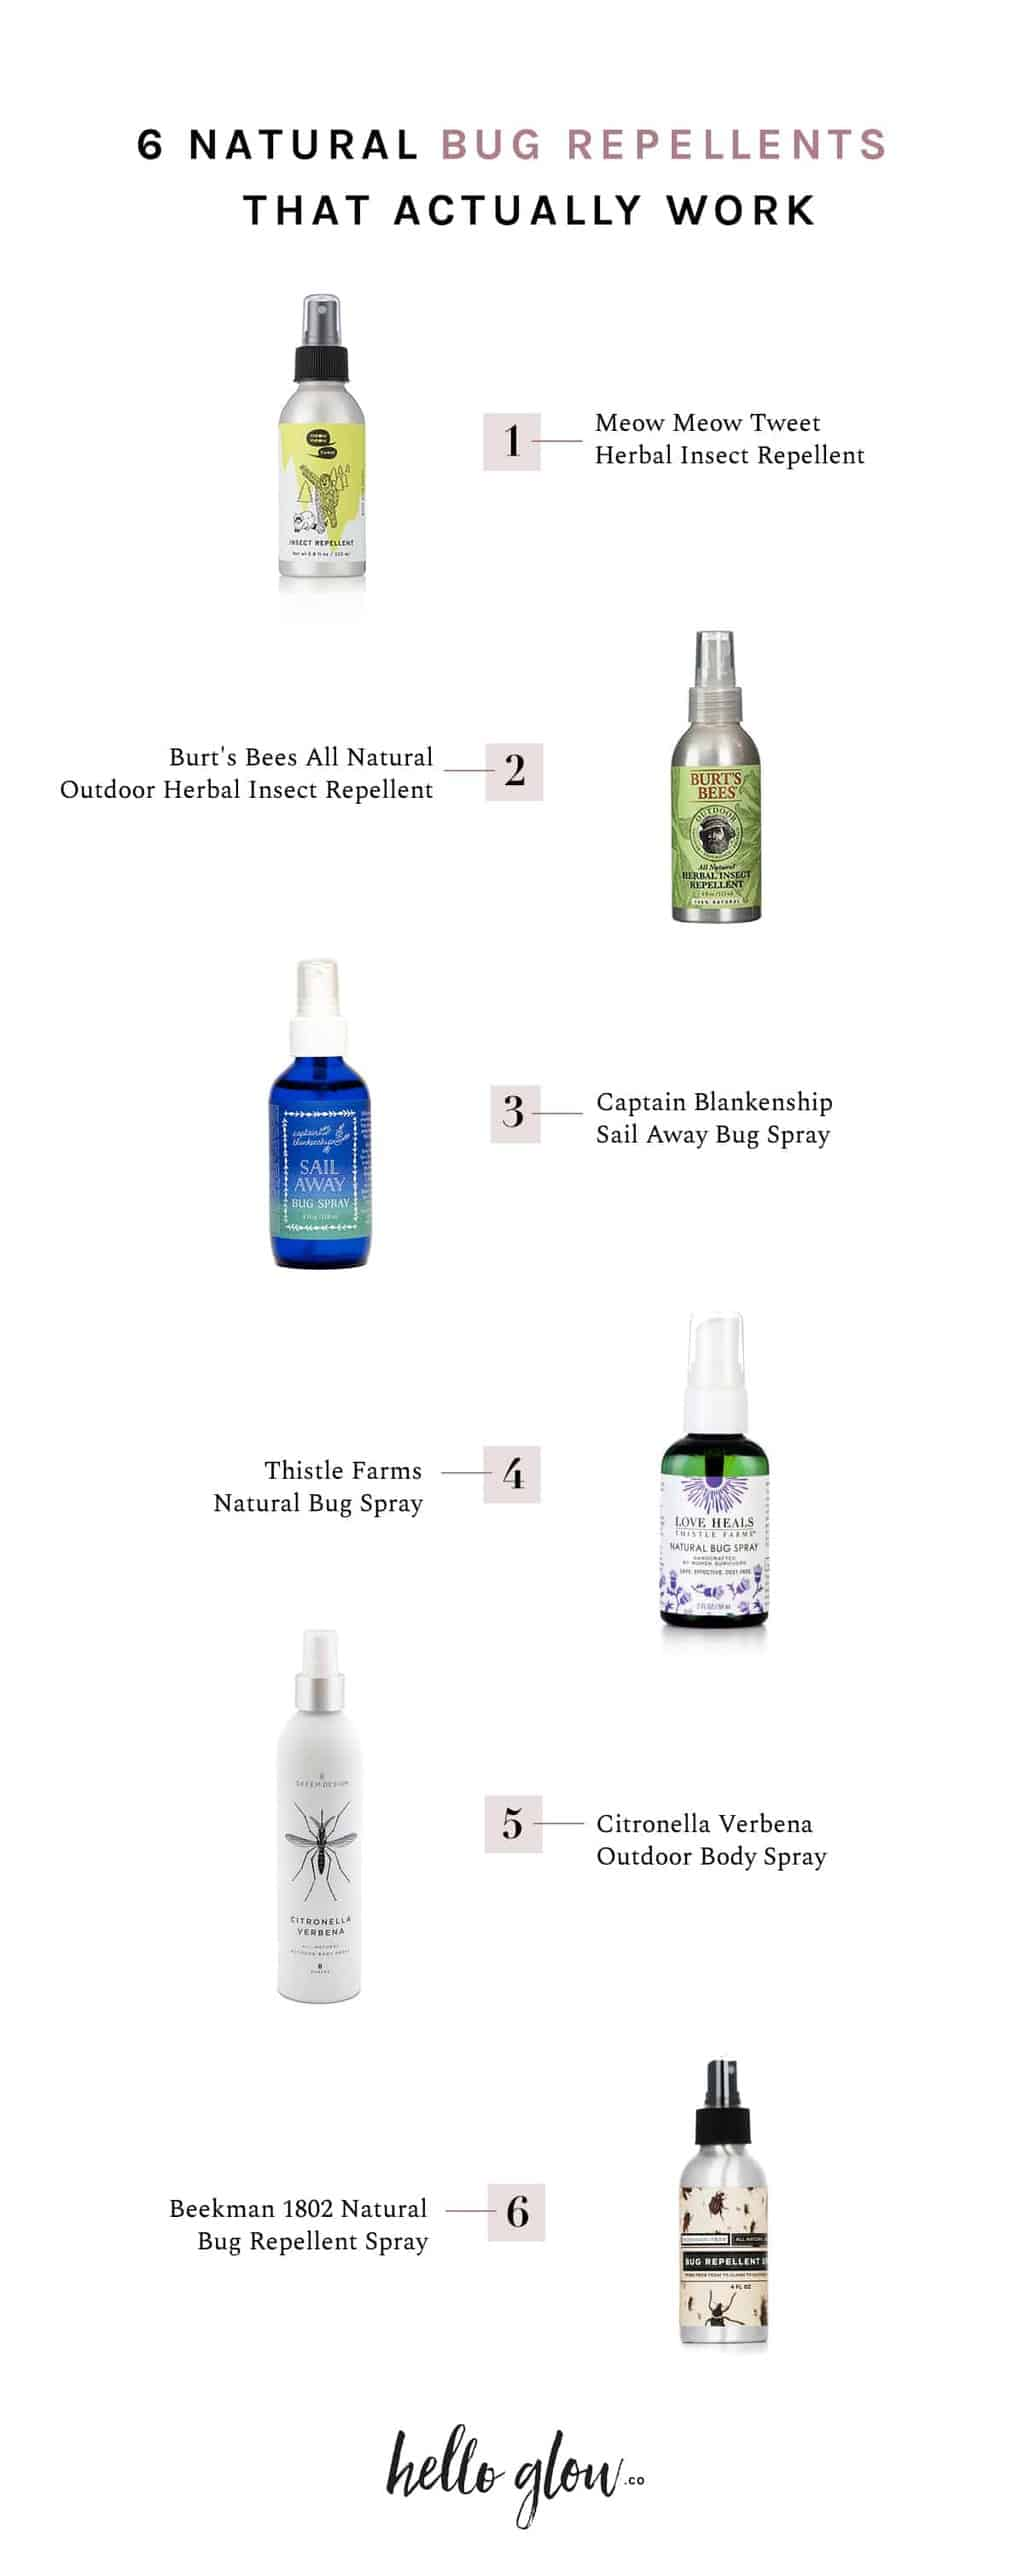 6 Natural Bug Repellents That Actually Work